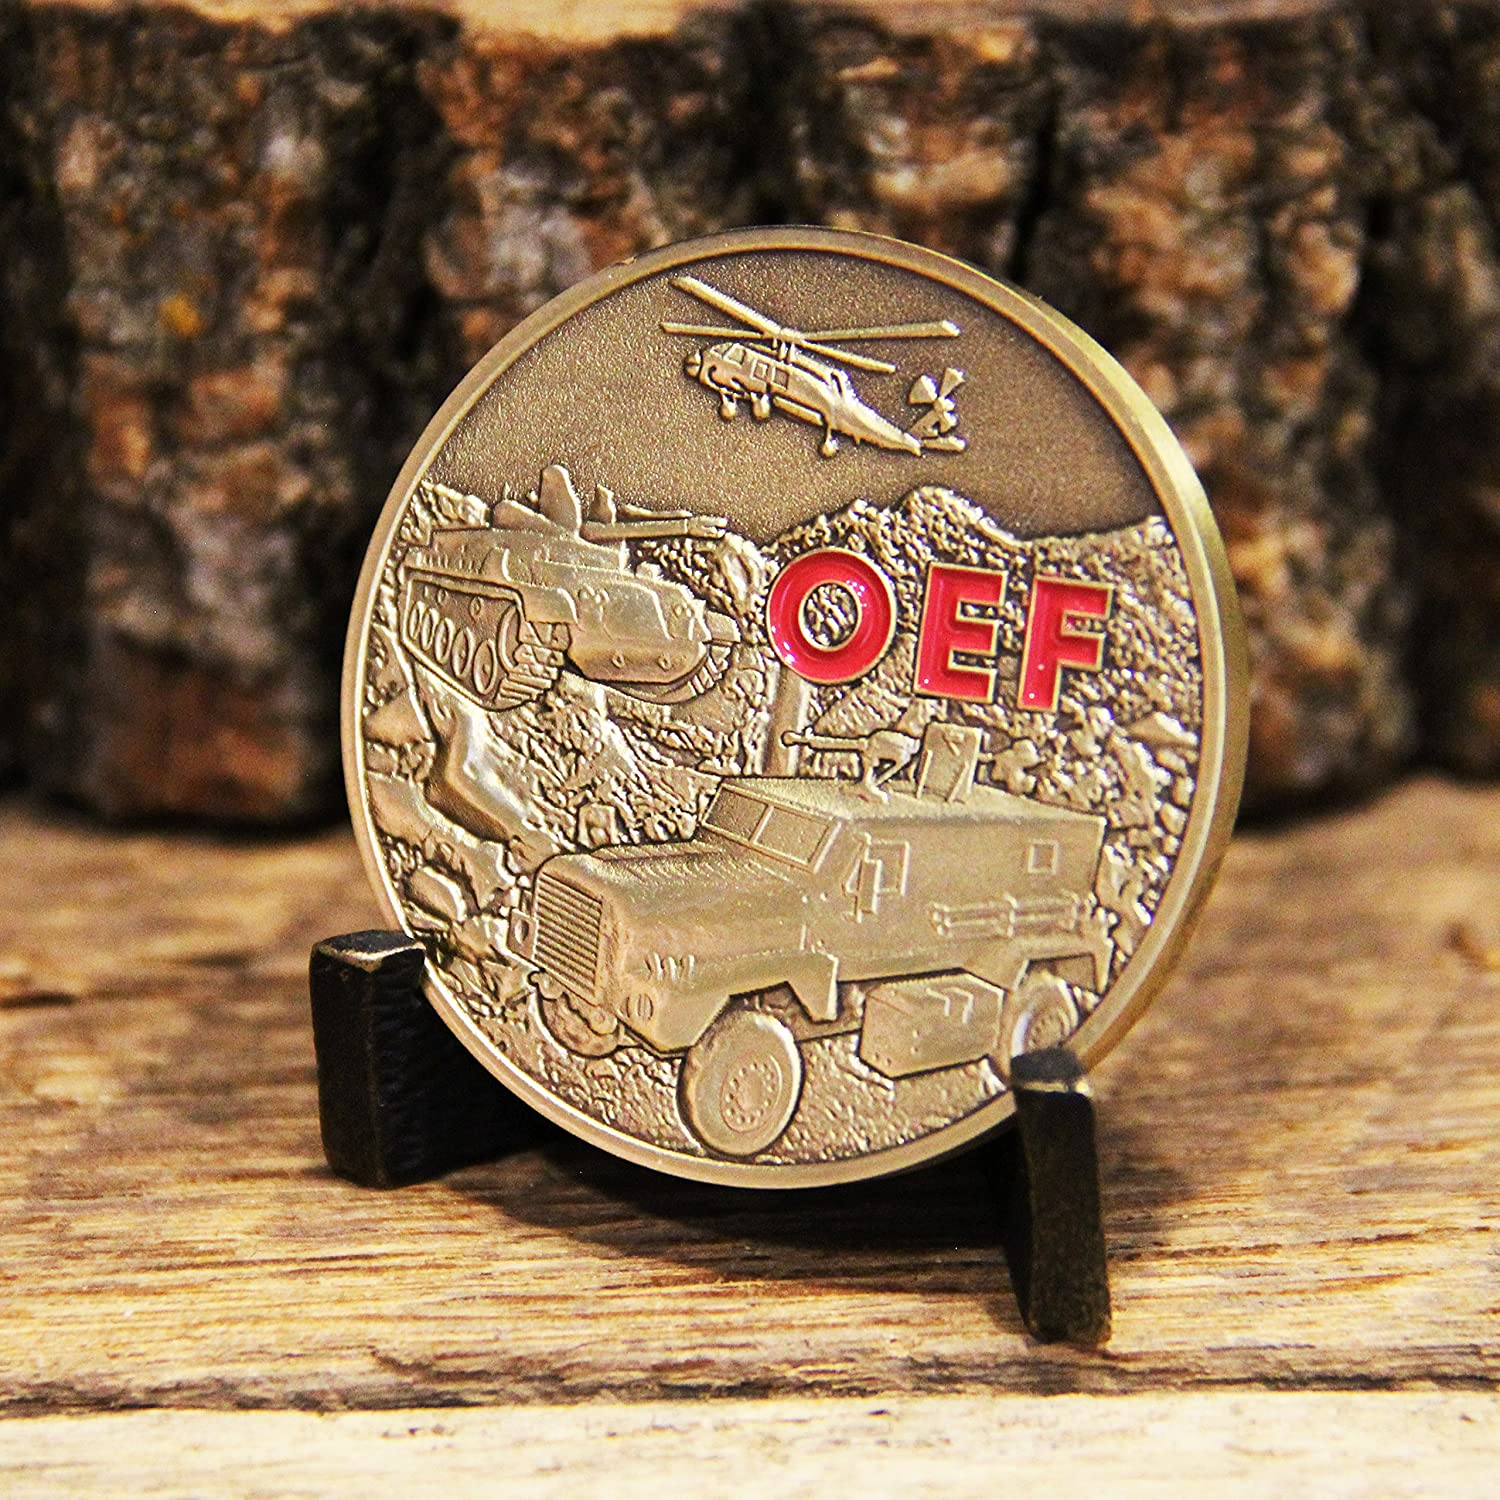 Great 3D detail Die Struck Brass Coin Coins For Anything Inc OEF Operation Enduring Freedom Challenge Coin Military Coin Designed by Military Veterans